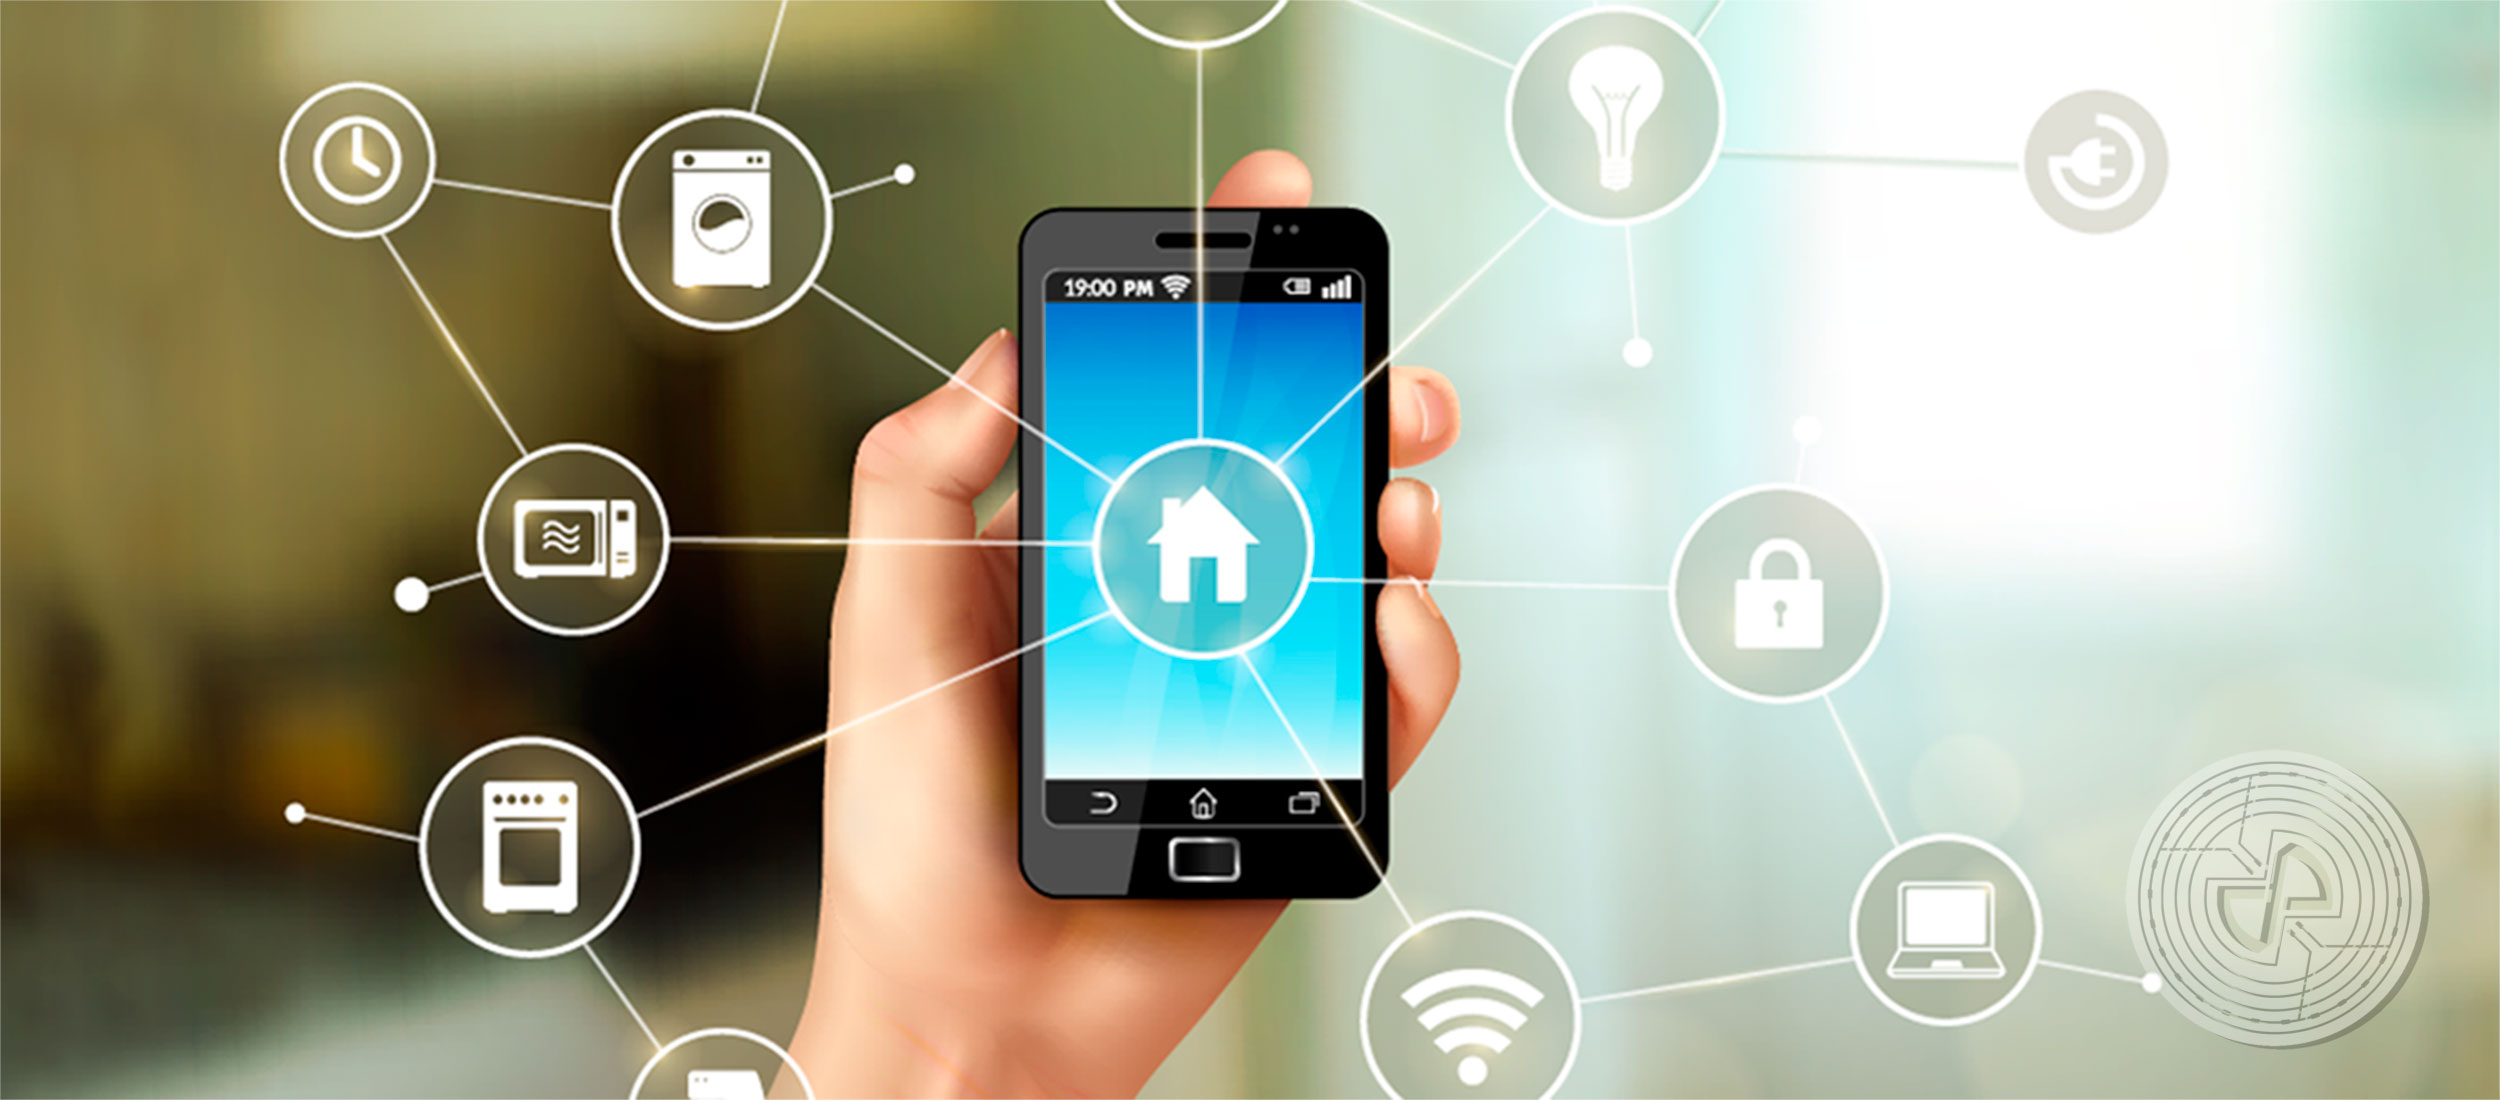 Home Automation is much more than just controlling your home gadgets